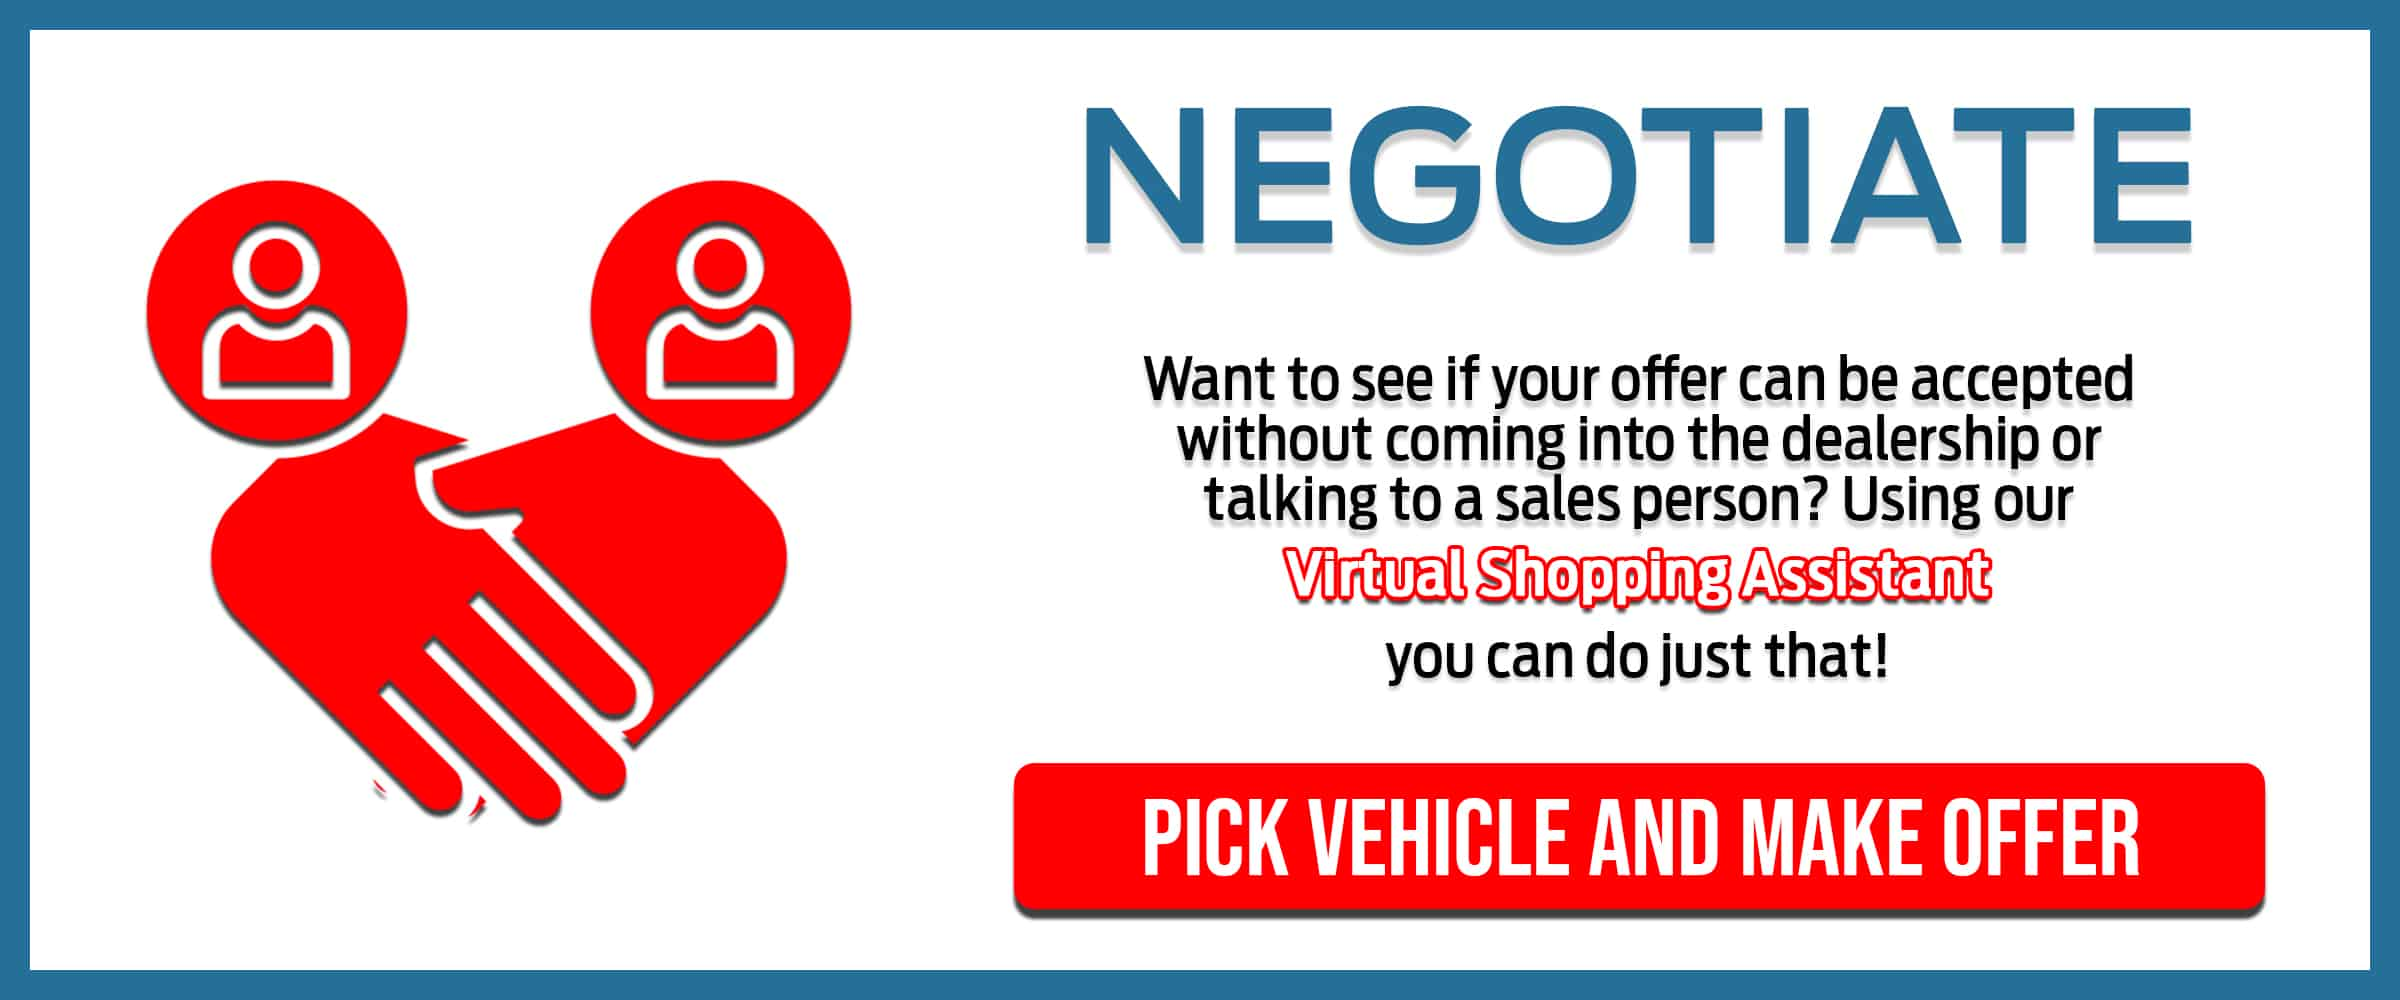 Negotiate-Ford